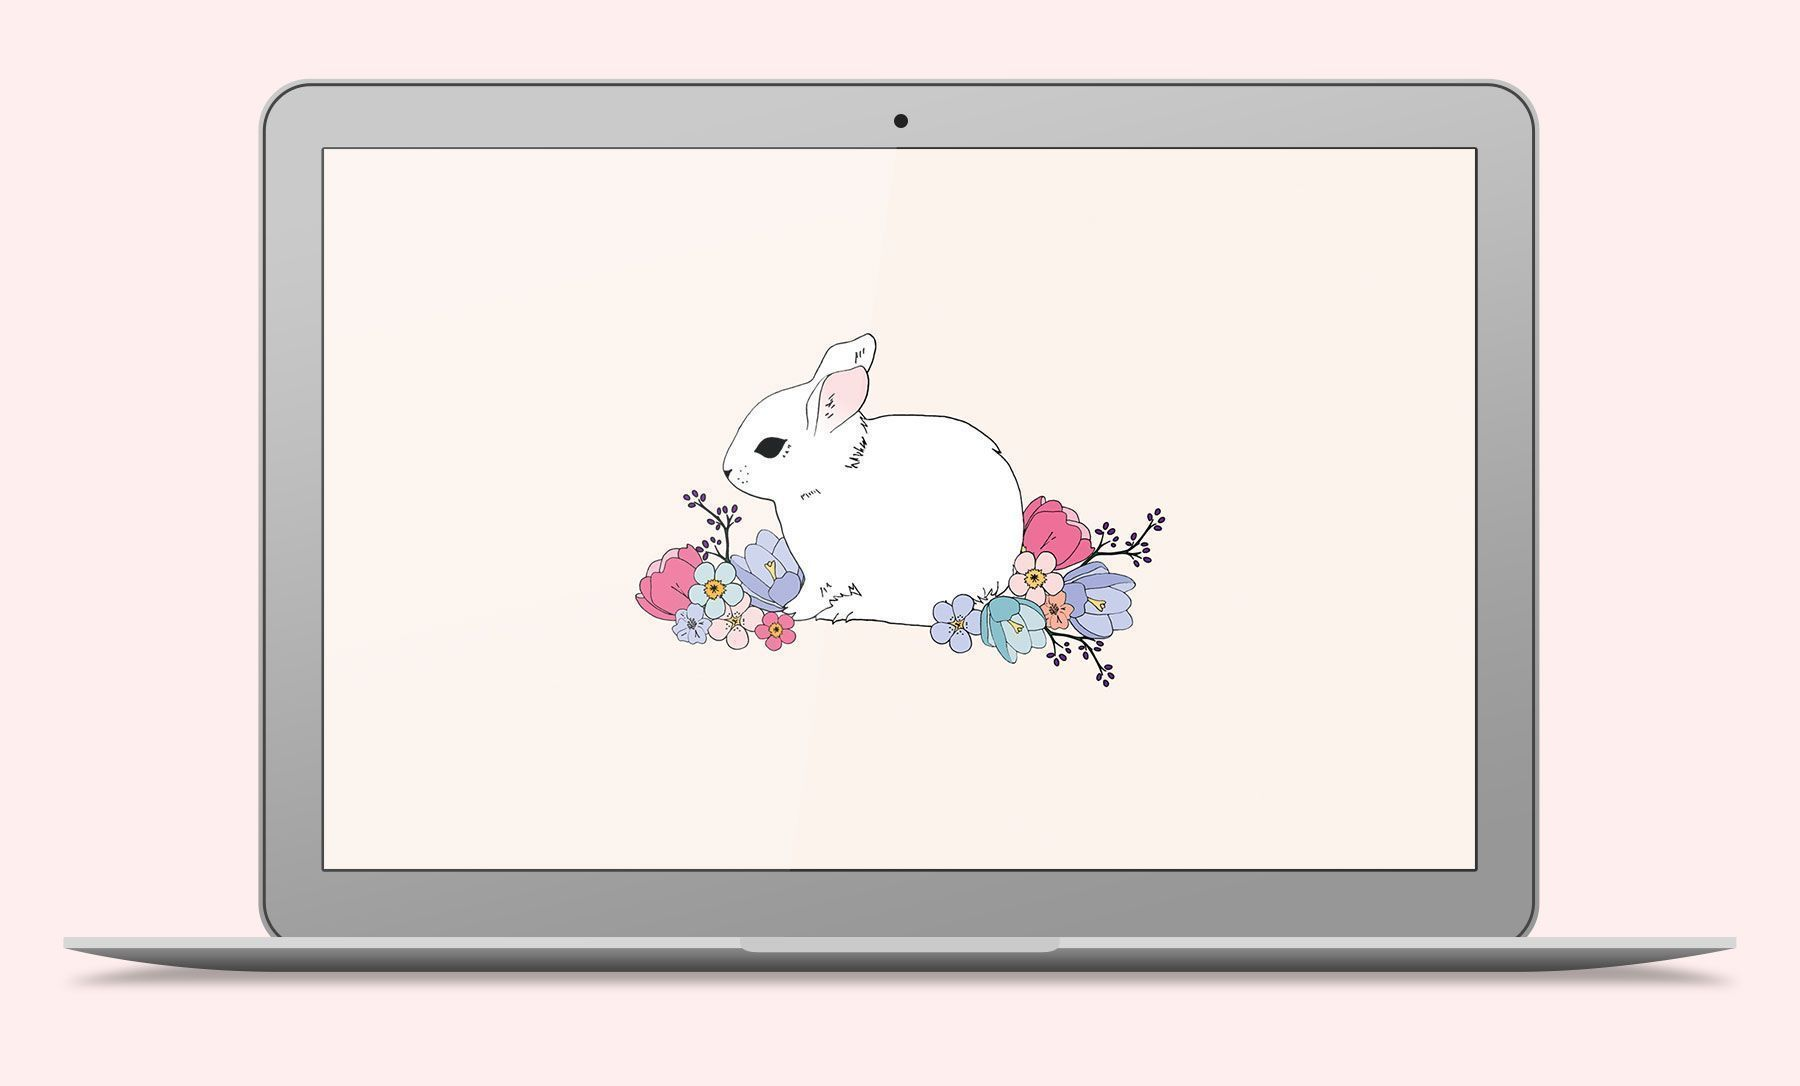 Spring bunny desktop wallpaper #springdesktopwallpaper Easter spring bunny desktop wallpaper - free download for desktop, iPad and iPhone #springdesktopwallpaper Spring bunny desktop wallpaper #springdesktopwallpaper Easter spring bunny desktop wallpaper - free download for desktop, iPad and iPhone #springdesktopwallpaper Spring bunny desktop wallpaper #springdesktopwallpaper Easter spring bunny desktop wallpaper - free download for desktop, iPad and iPhone #springdesktopwallpaper Spring bunny d #springdesktopwallpaper